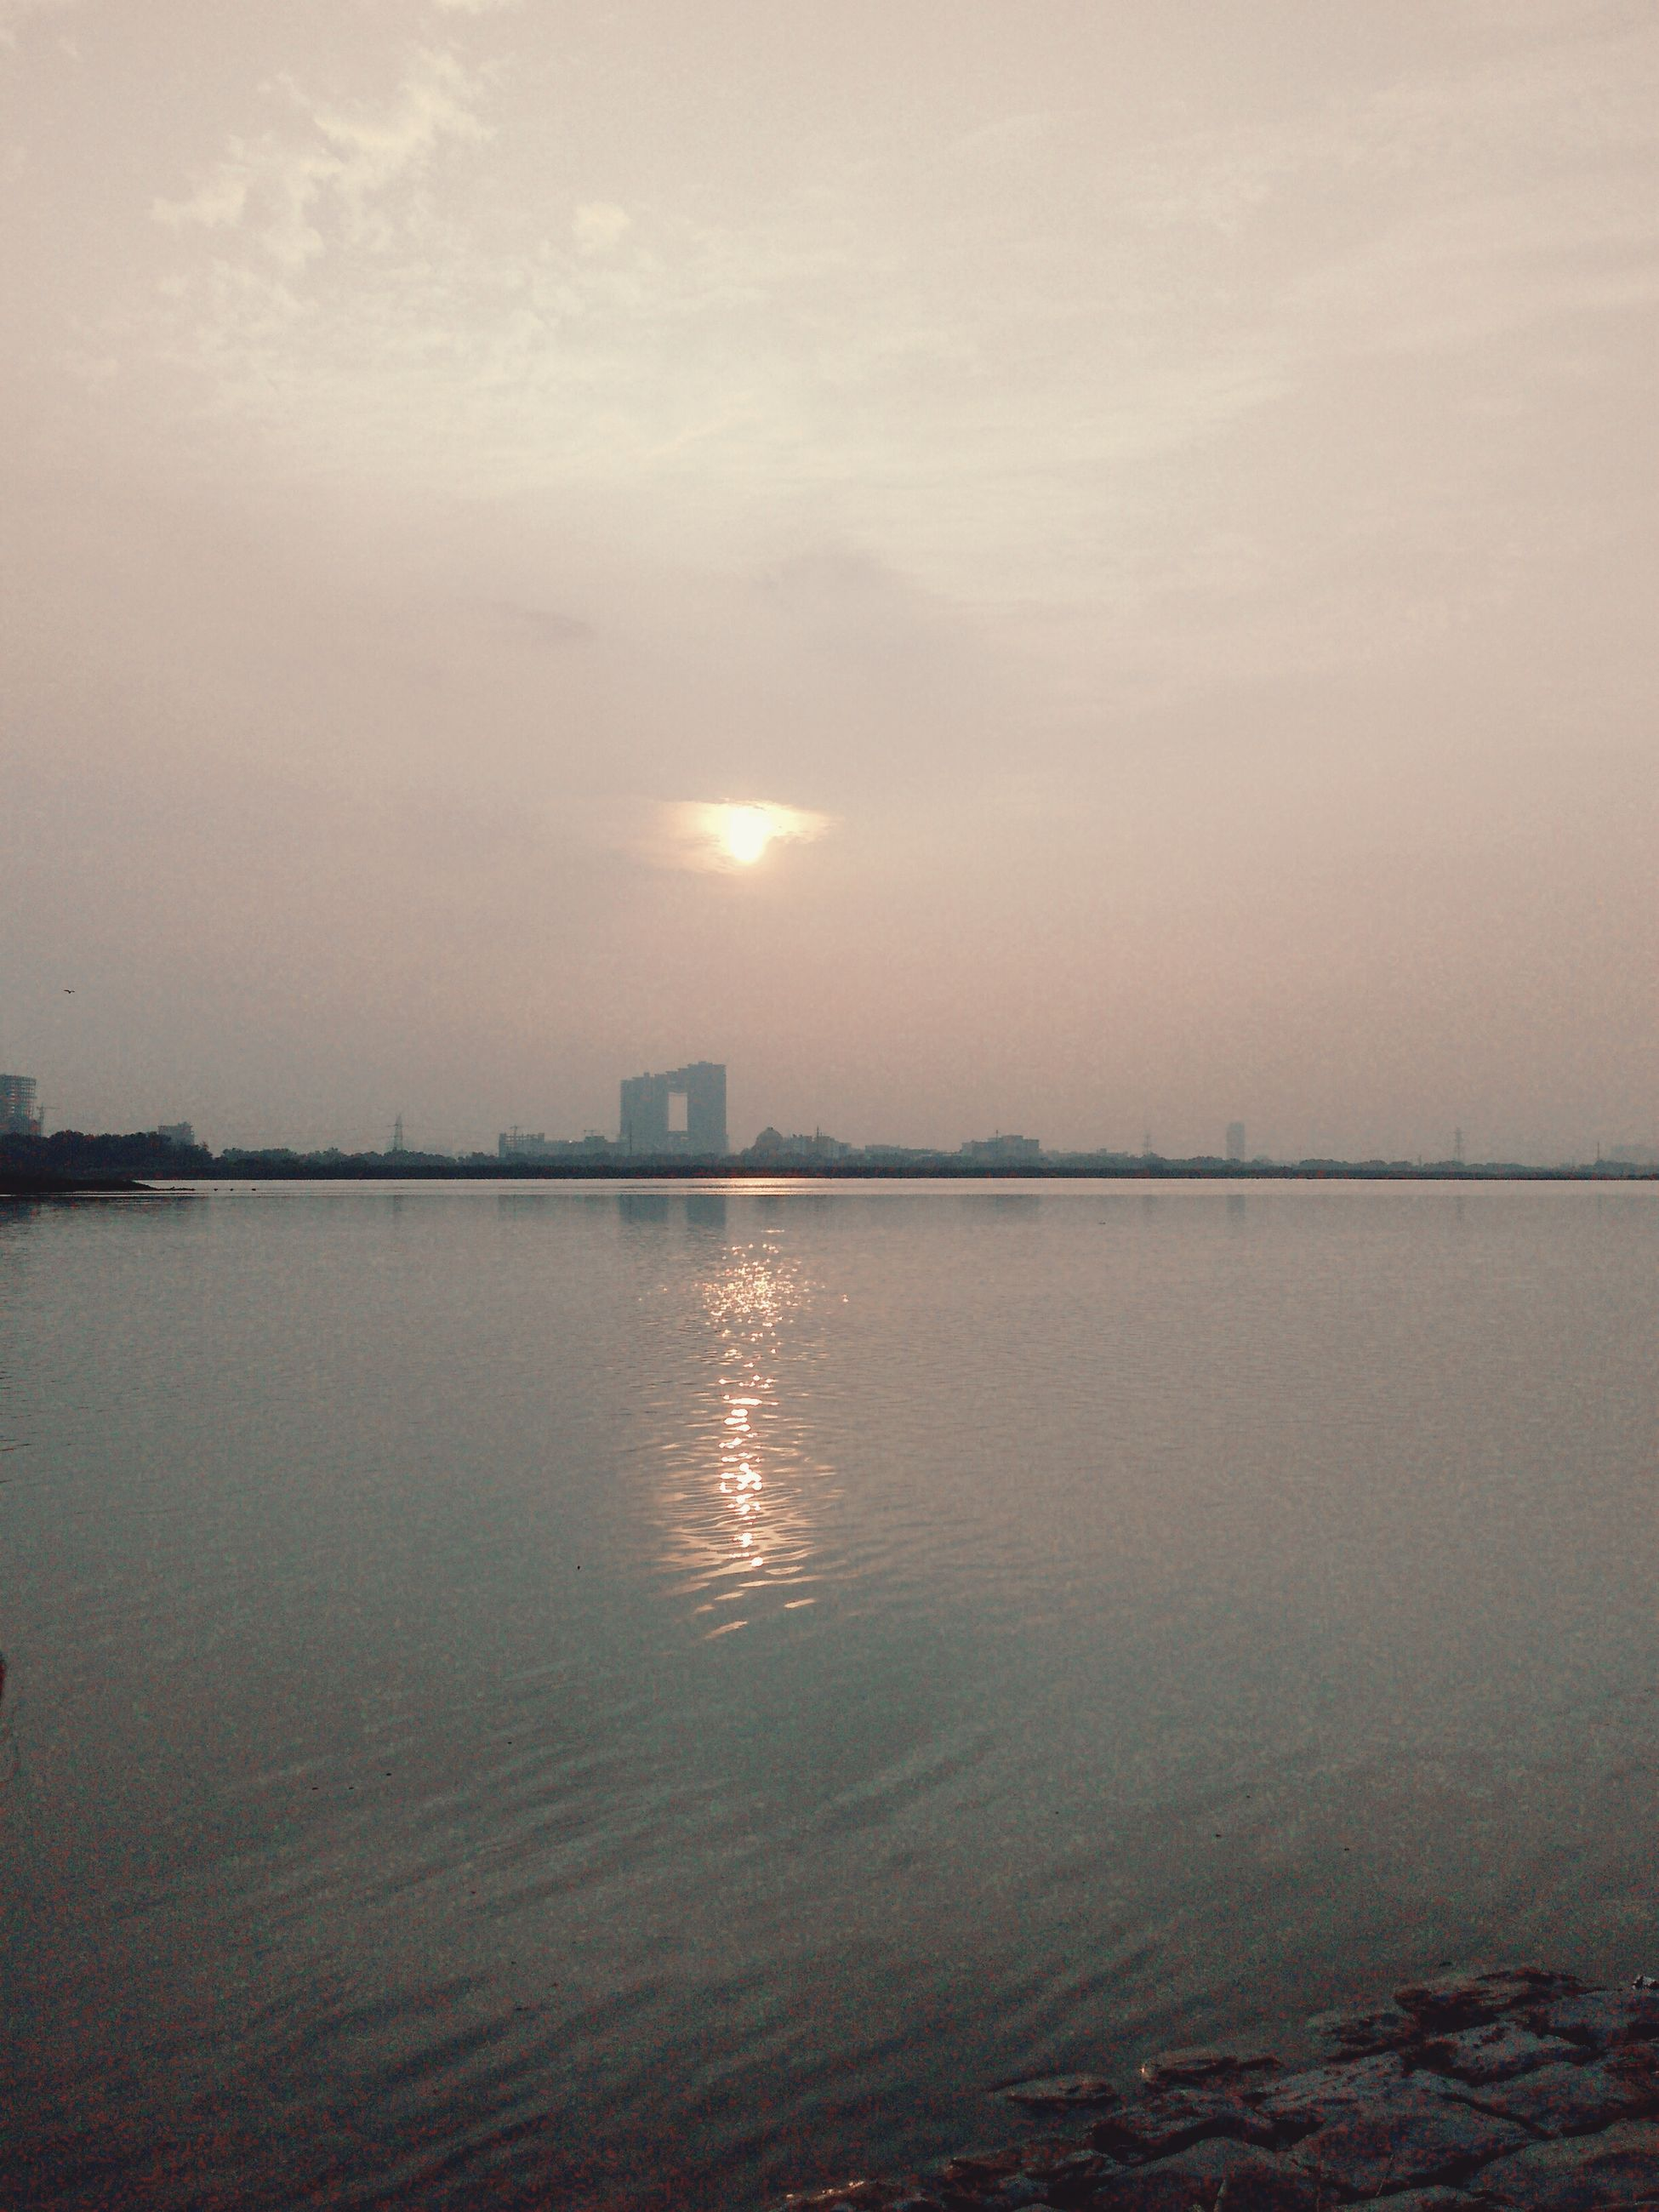 water, sunset, scenics, tranquil scene, sun, tranquility, reflection, sea, beauty in nature, sky, idyllic, seascape, nature, waterfront, cloud, calm, majestic, remote, distant, atmosphere, outdoors, non-urban scene, vacations, no people, urban skyline, ocean, cloud - sky, lens flare, atmospheric mood, moody sky, dramatic sky